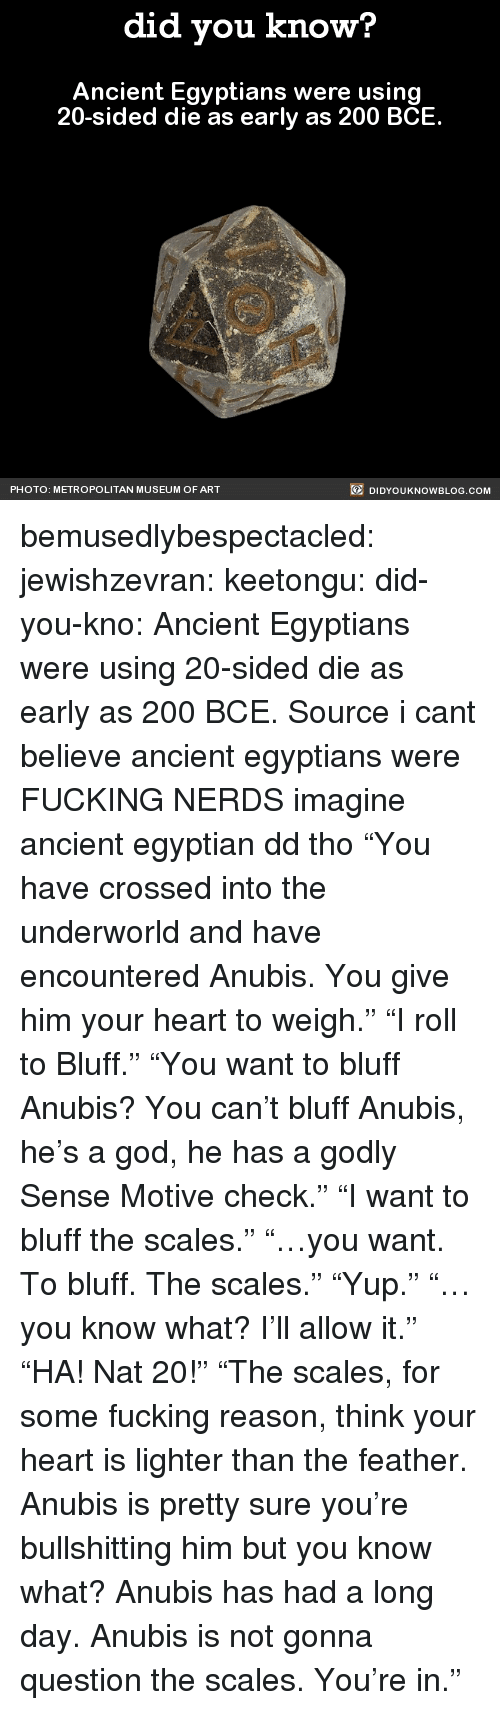 """Godly: did you know?  Ancient Egyptians were using  20-sided die as early as 200 BCE  PHOTO: METROPOLITAN MUSEUM OF ART  DIDYOUKNOWBLOG.COM bemusedlybespectacled: jewishzevran:  keetongu:  did-you-kno:  Ancient Egyptians were using  20-sided die as early as 200 BCE.  Source  i cant believe ancient egyptians were FUCKING NERDS  imagine ancient egyptian dd tho  """"You have crossed into the underworld and have encountered Anubis. You give him your heart to weigh."""" """"I roll to Bluff."""" """"You want to bluff Anubis? You can't bluff Anubis, he's a god, he has a godly Sense Motive check."""" """"I want to bluff the scales."""" """"…you want. To bluff. The scales."""" """"Yup."""" """"…you know what? I'll allow it."""" """"HA! Nat 20!"""" """"The scales, for some fucking reason, think your heart is lighter than the feather. Anubis is pretty sure you're bullshitting him but you know what? Anubis has had a long day. Anubis is not gonna question the scales. You're in."""""""